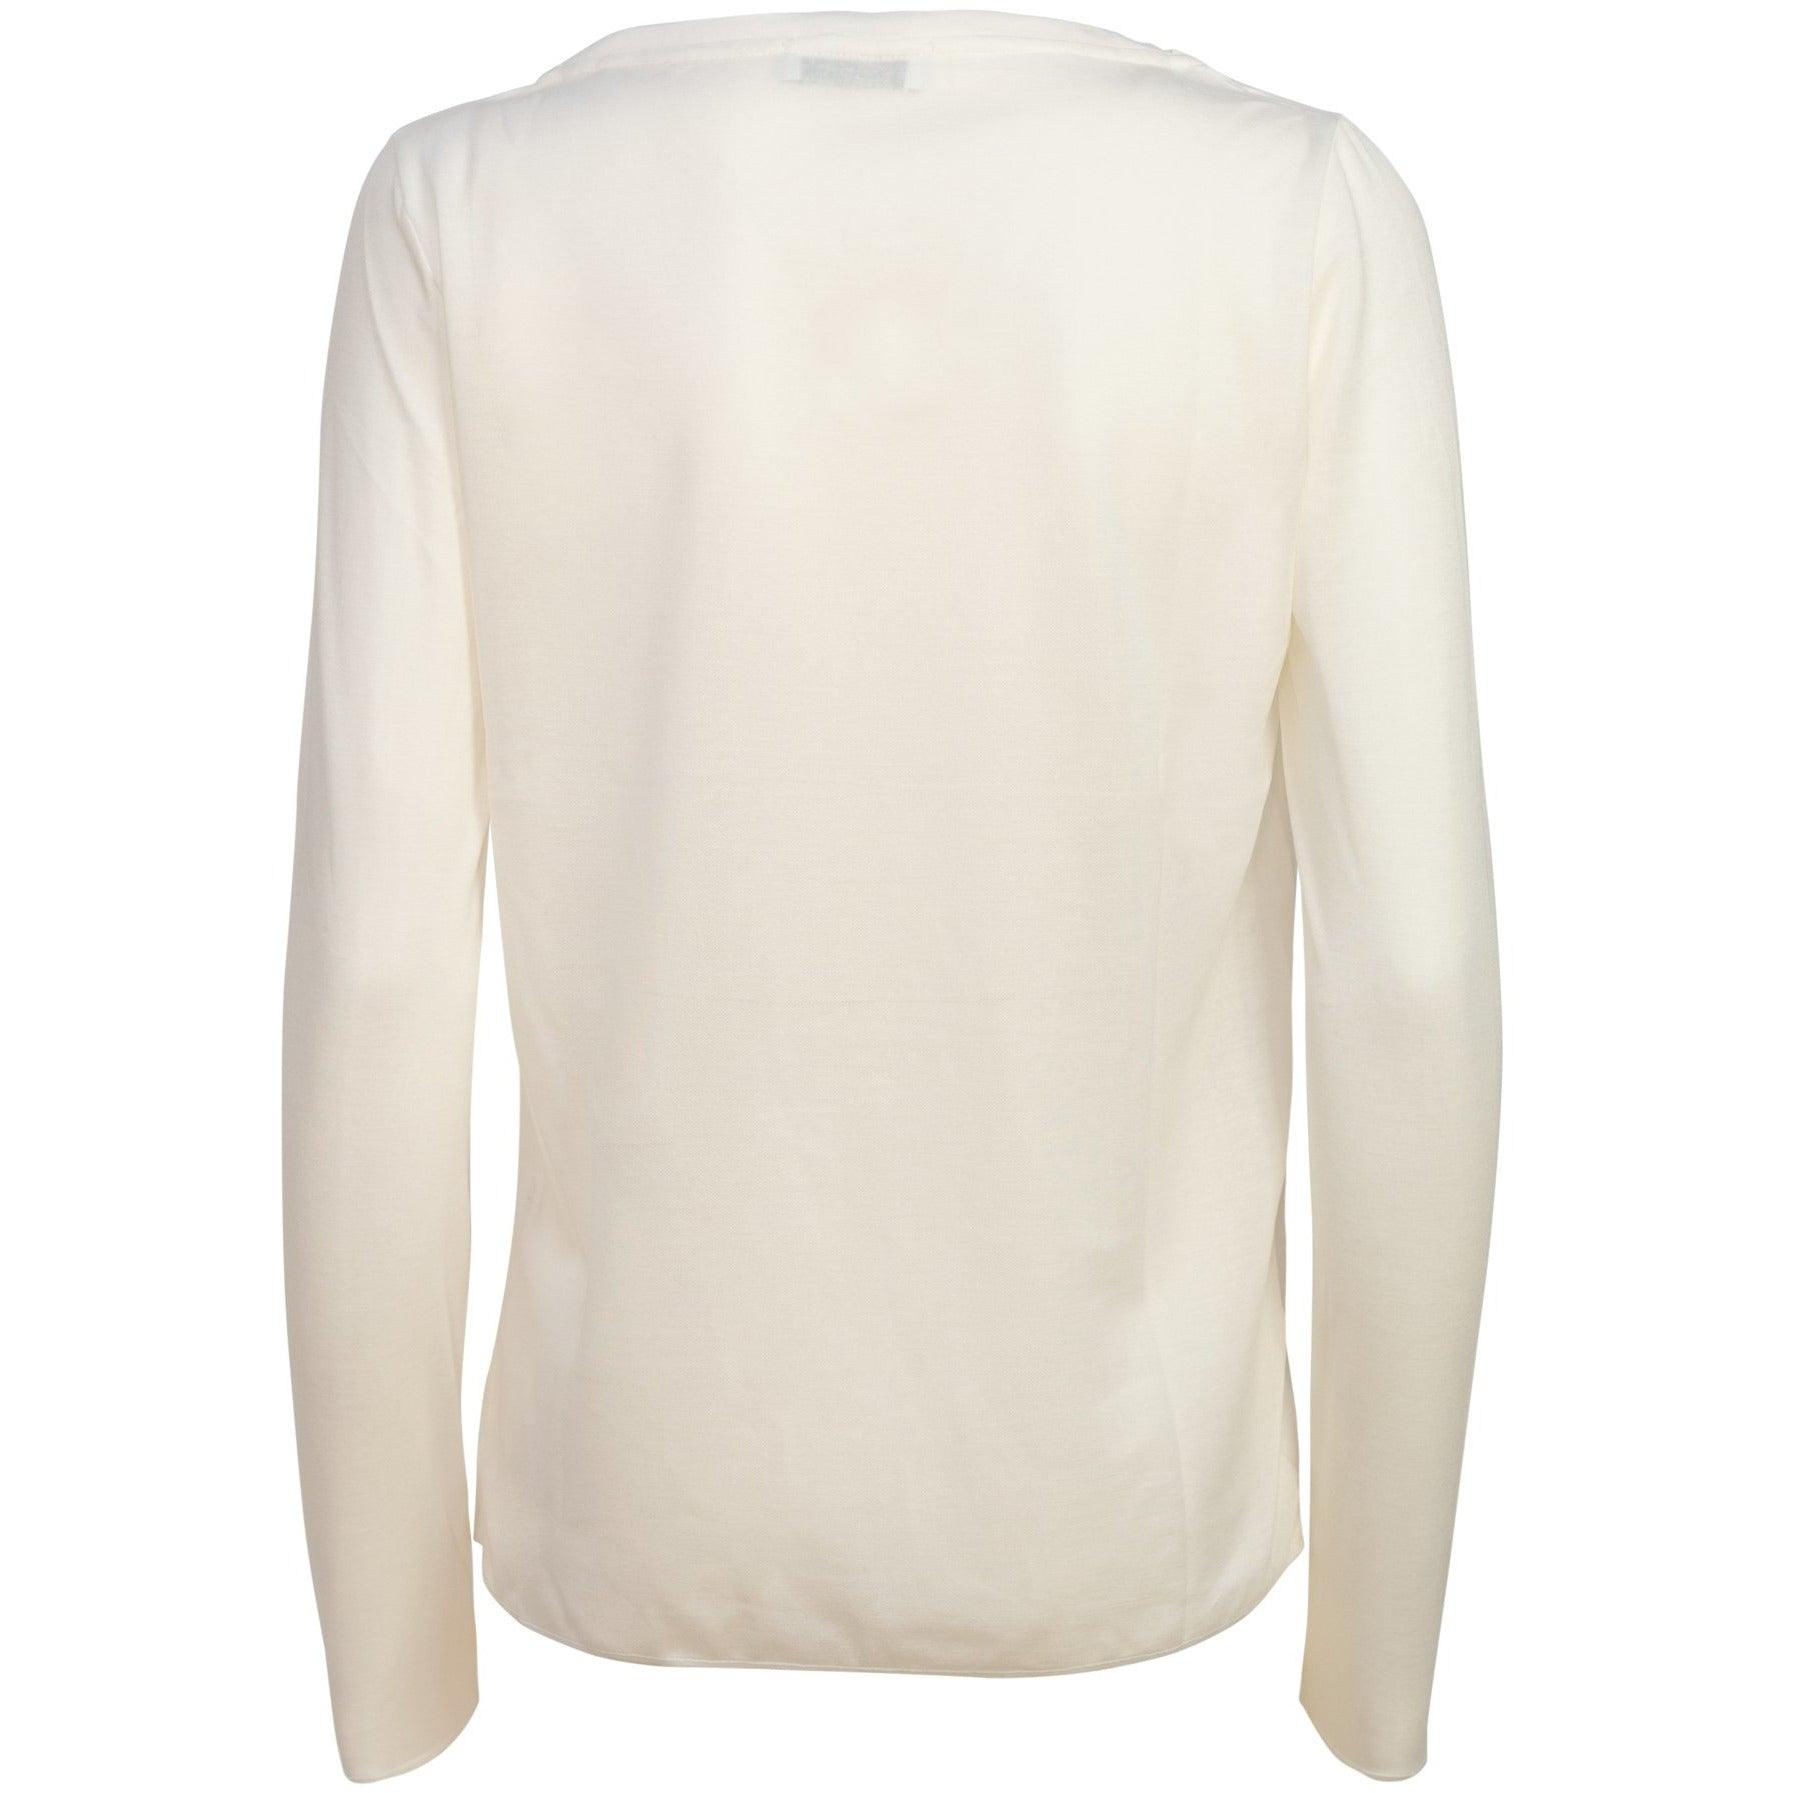 Women Long Sleeve Modal Top In White